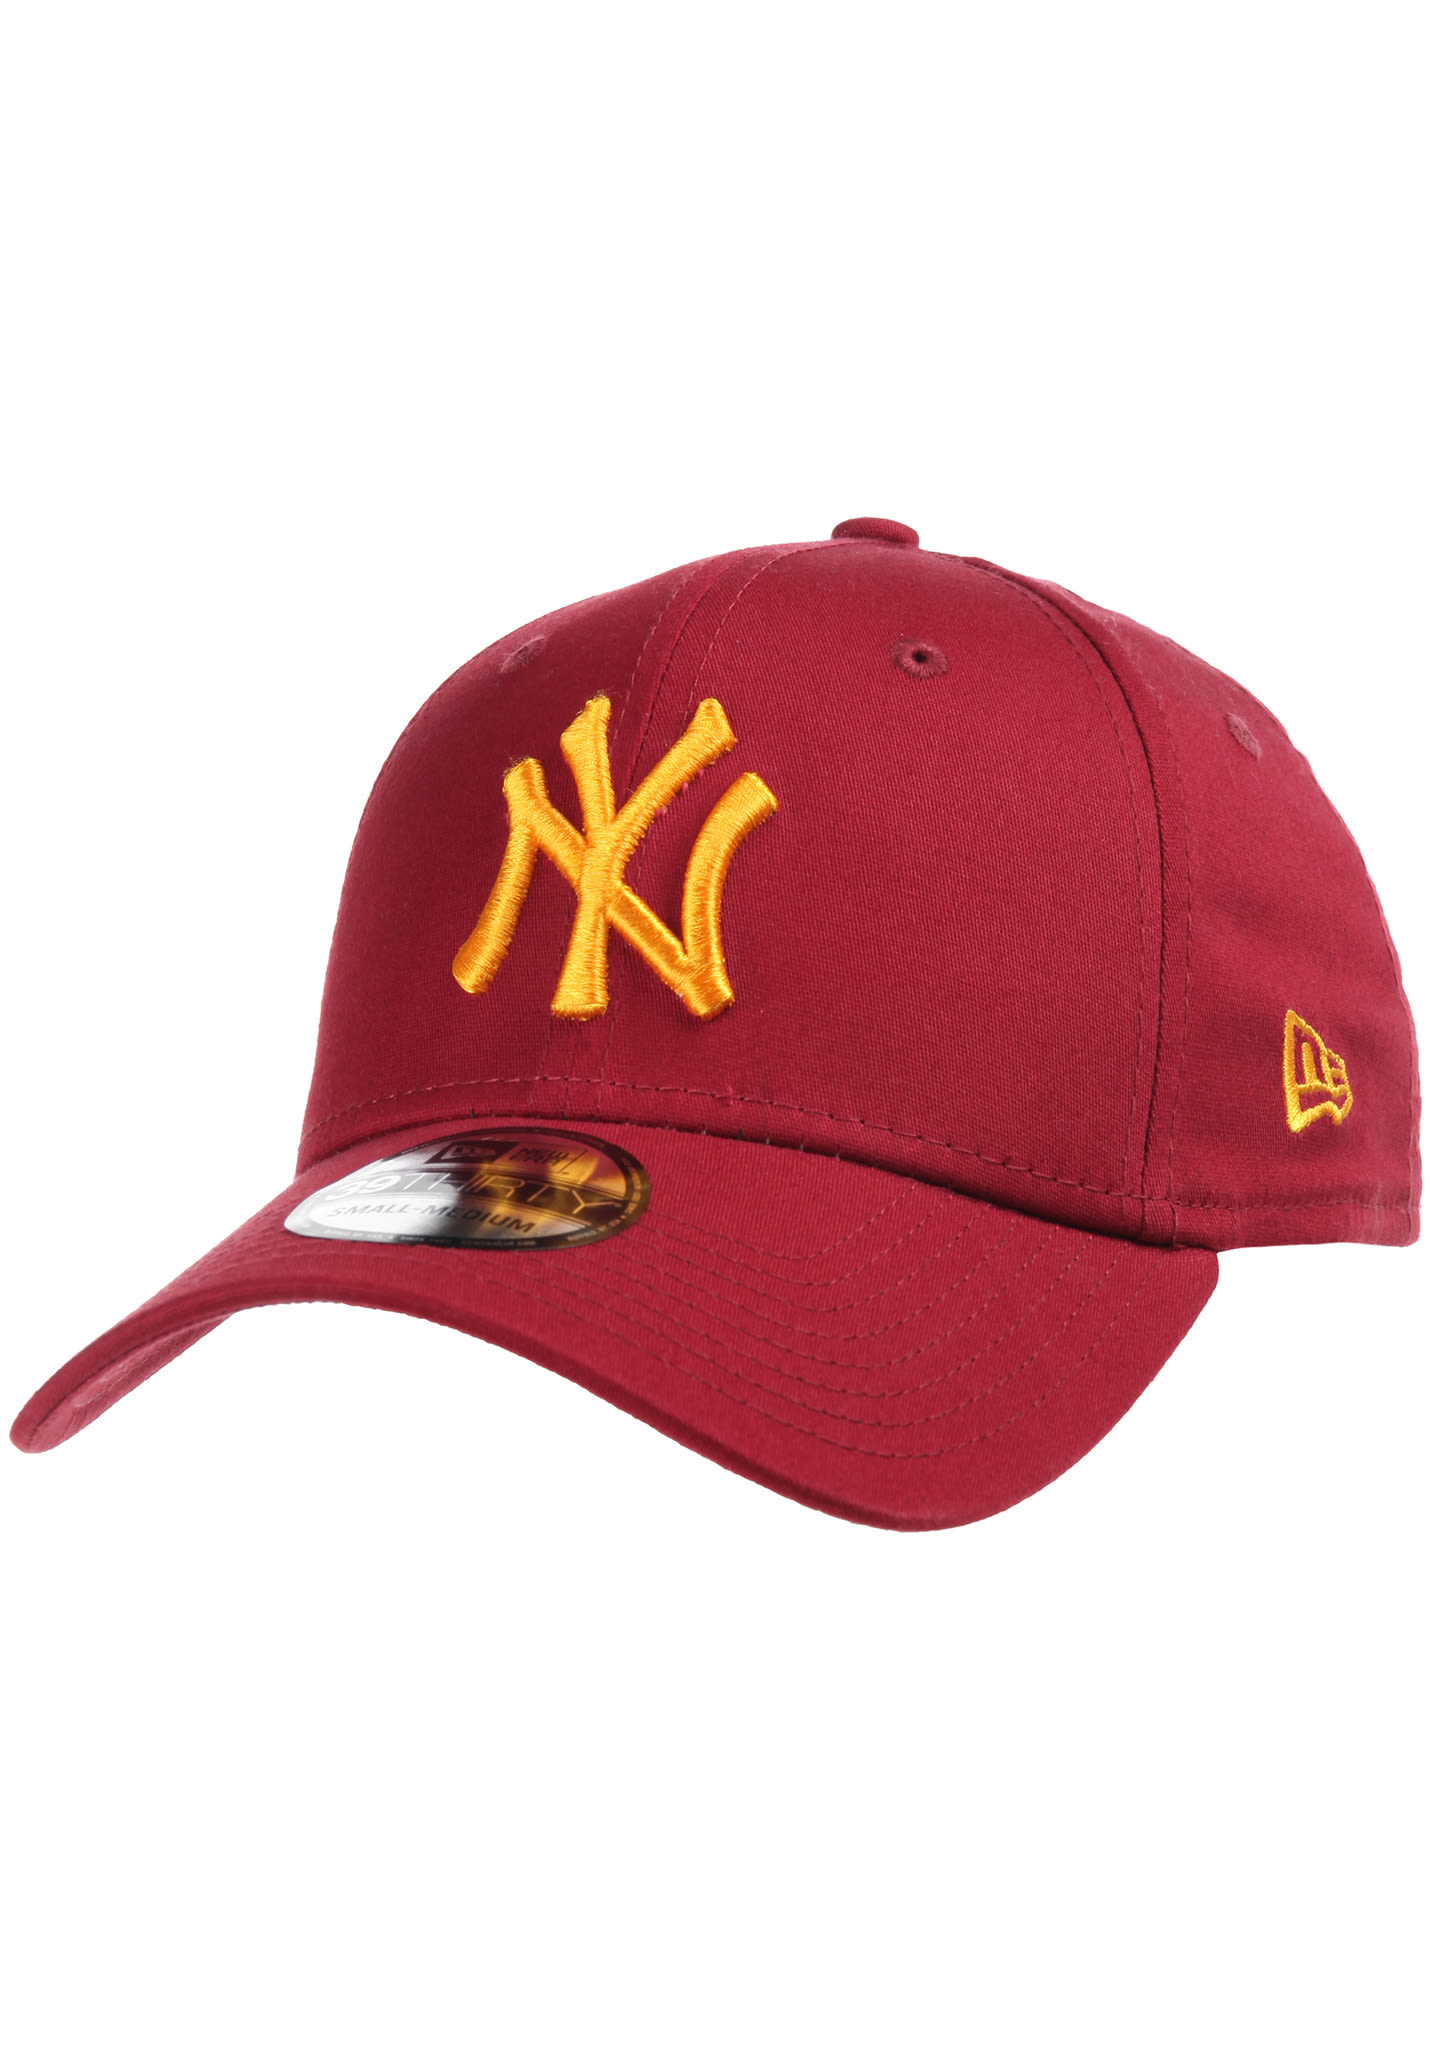 e3dfb339ae0 NEW Era 39Thirty New York Yankees - Flexfit Cap - Red - Planet Sports